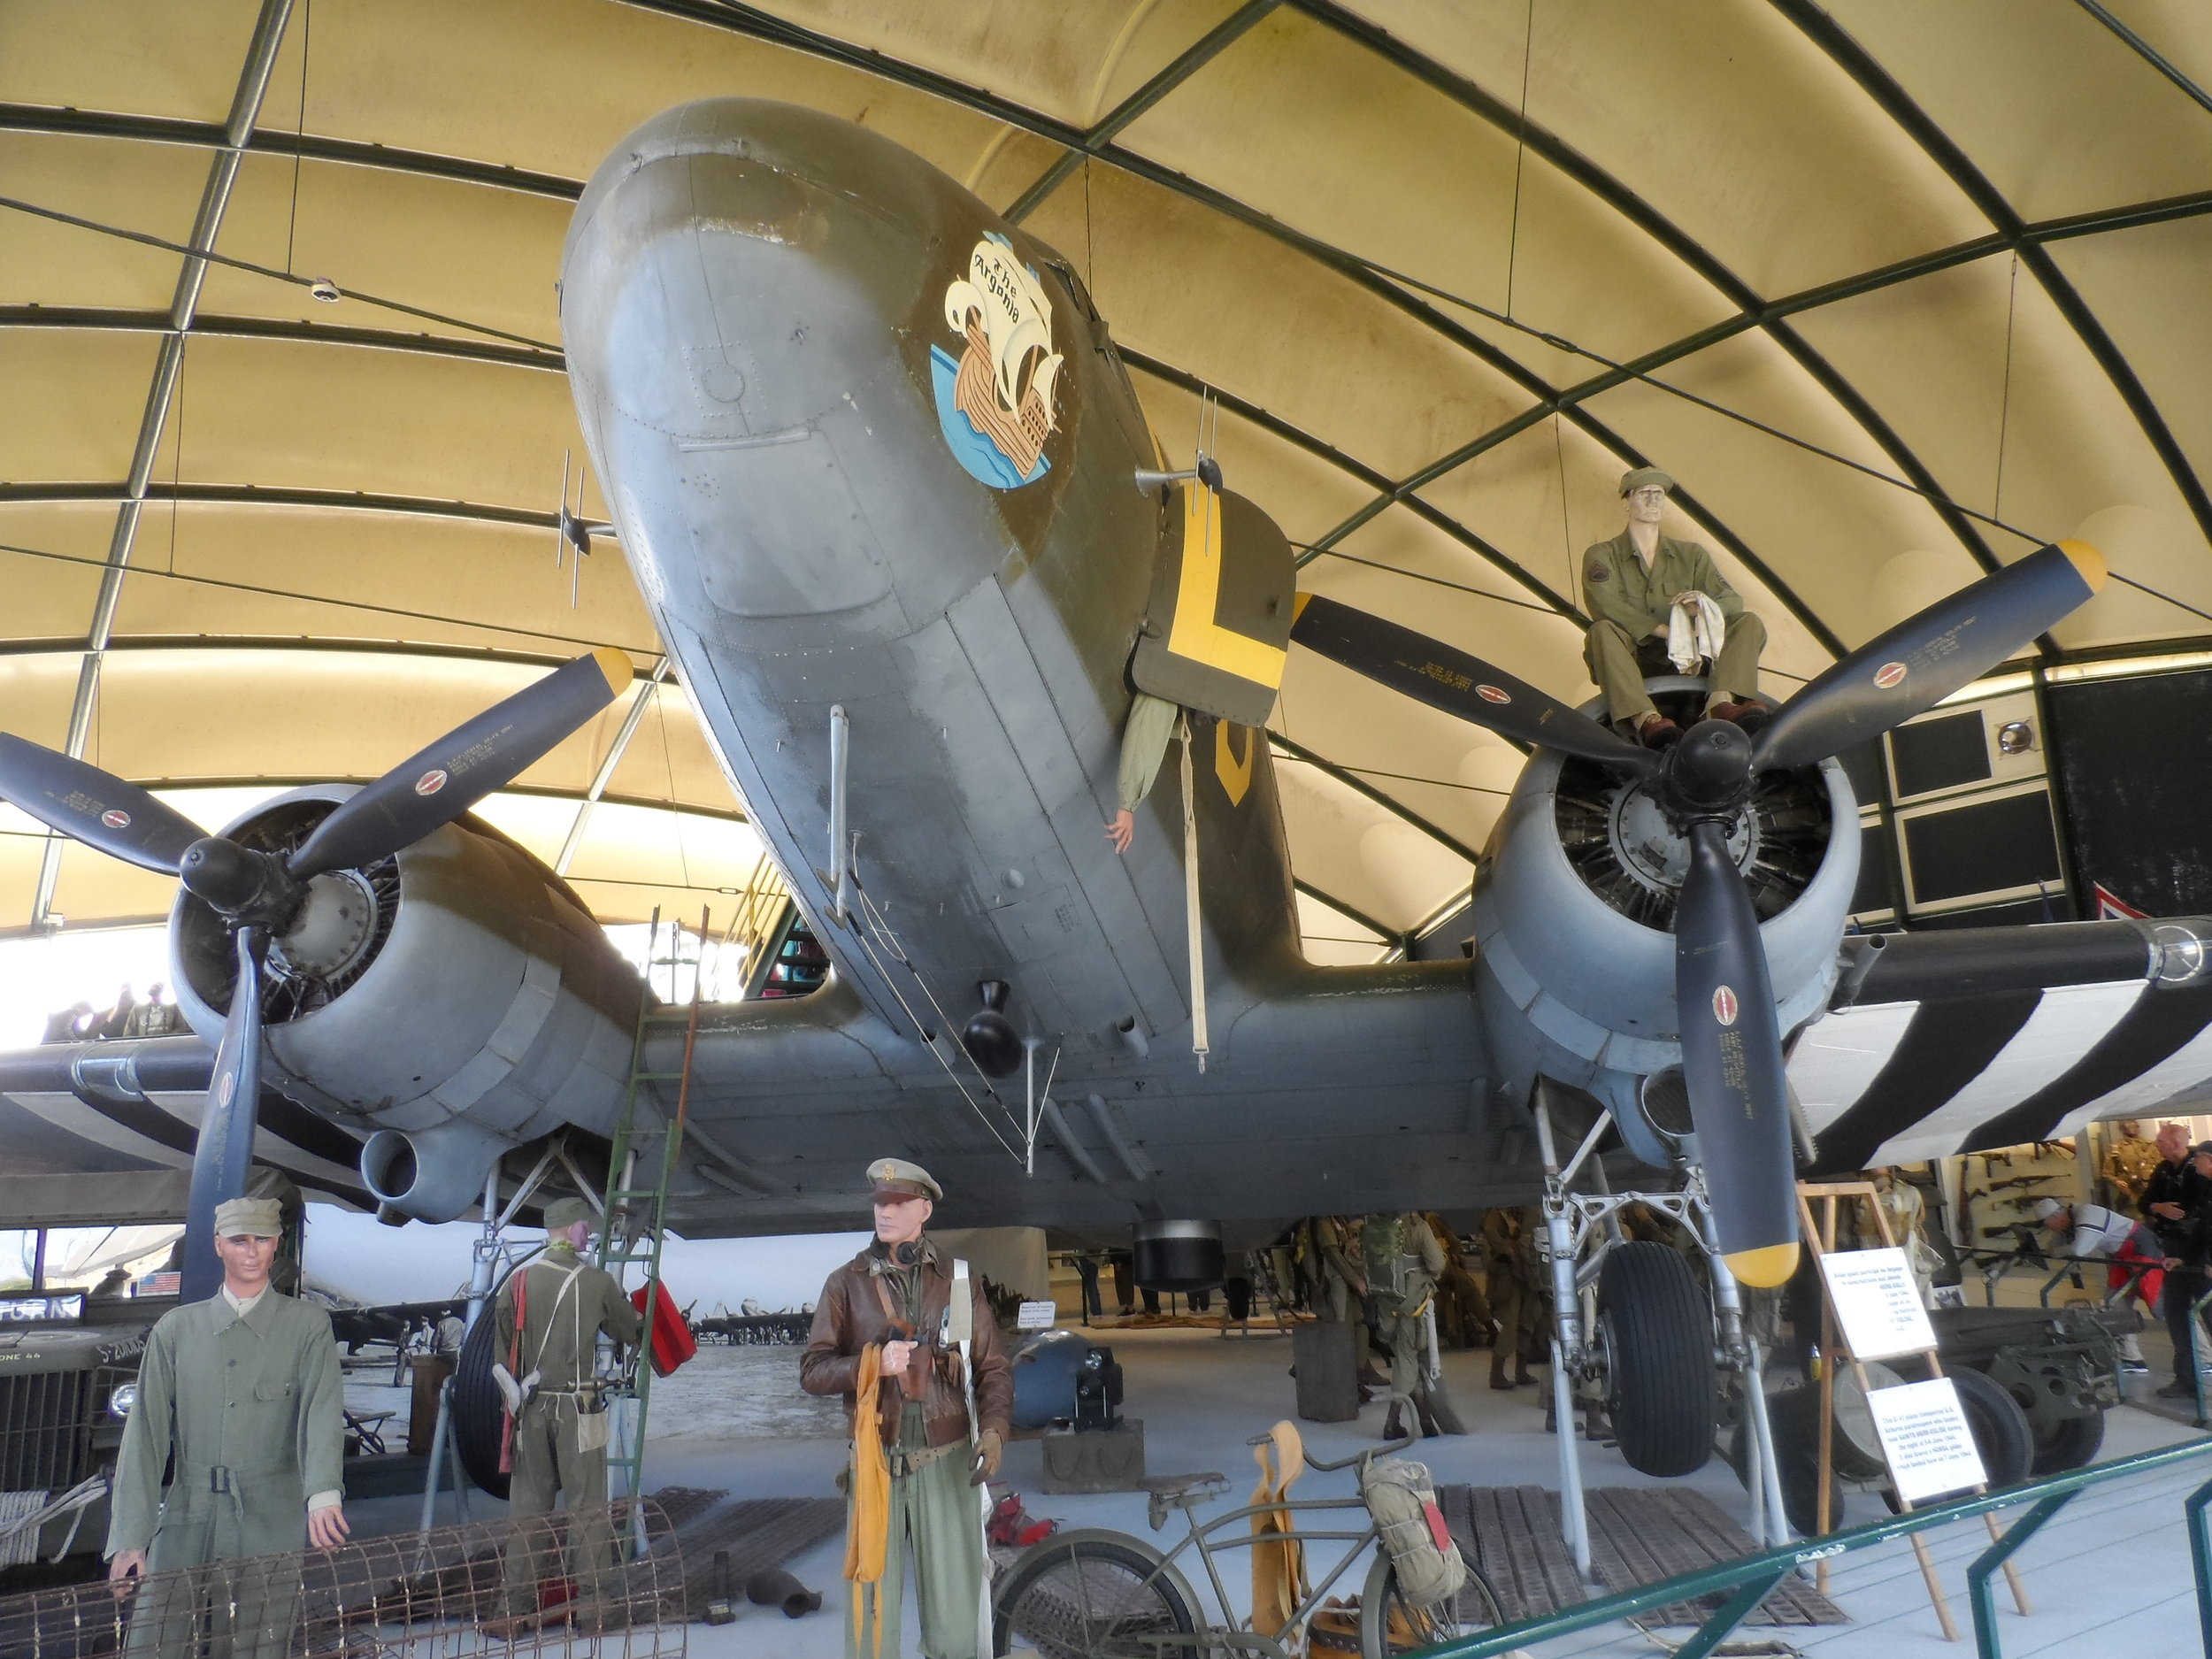 C 47 replica on display at the Airborne Museum in Ste. Mere Eglise—this is the plane most soldiers jumped from on D Day